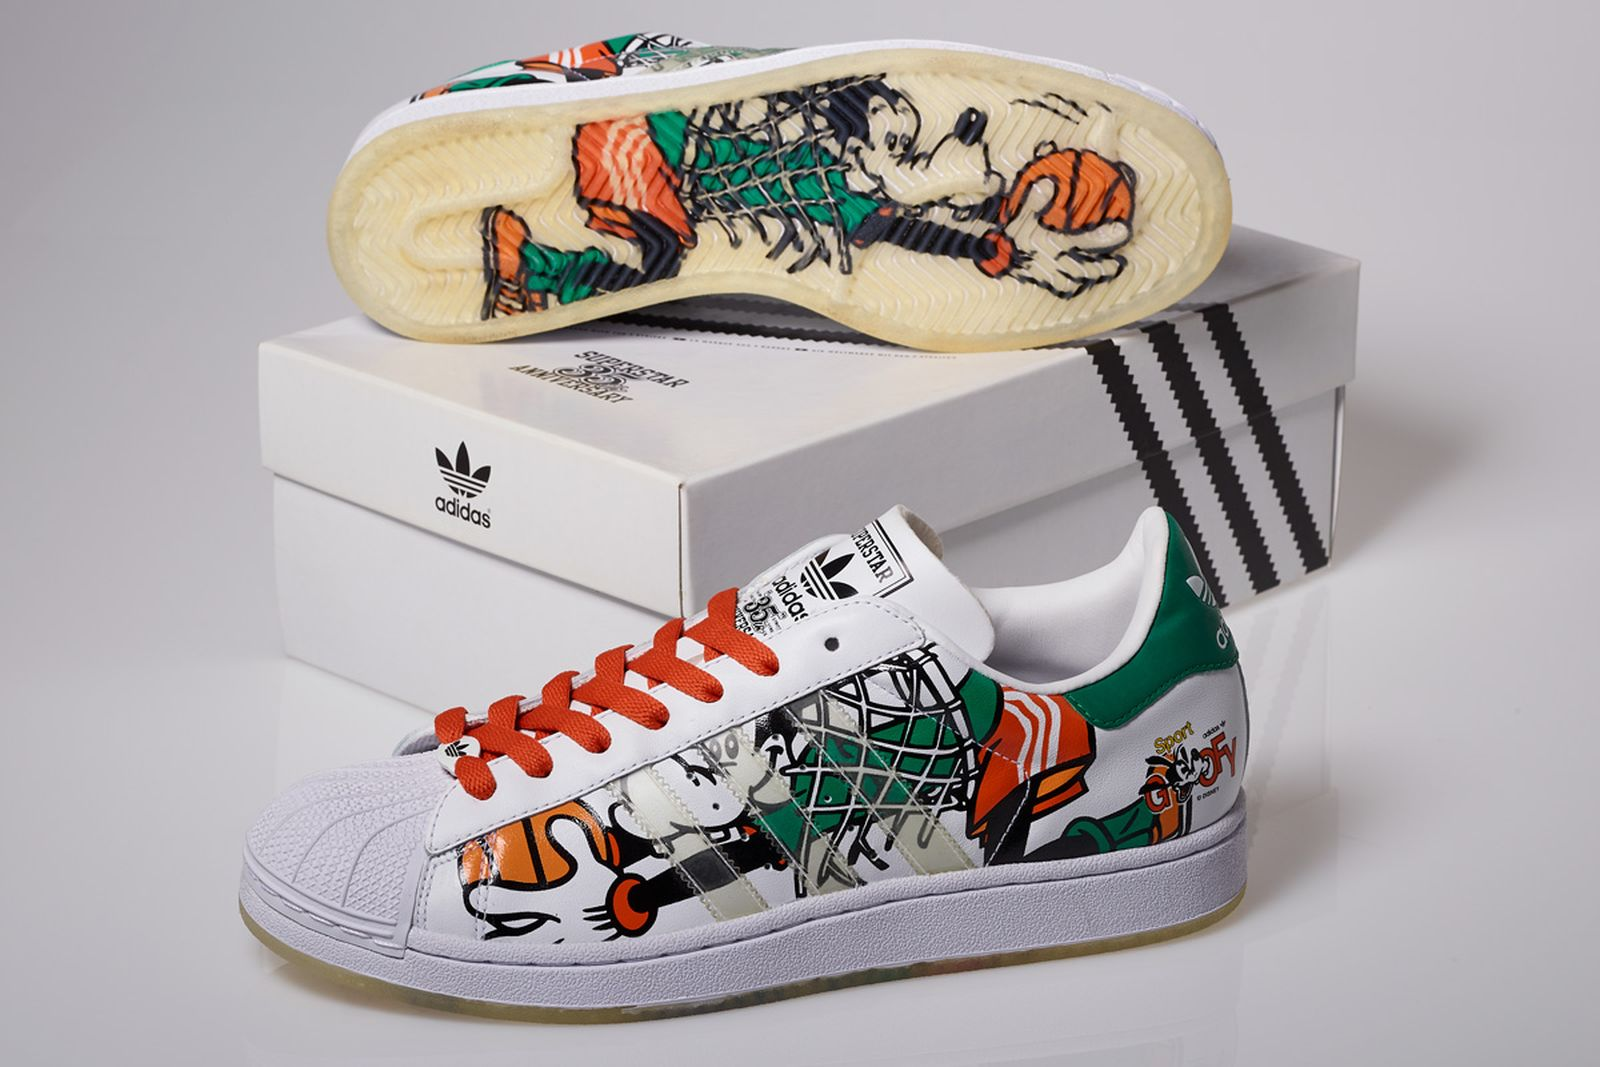 adidas-superstar-frontpage-12